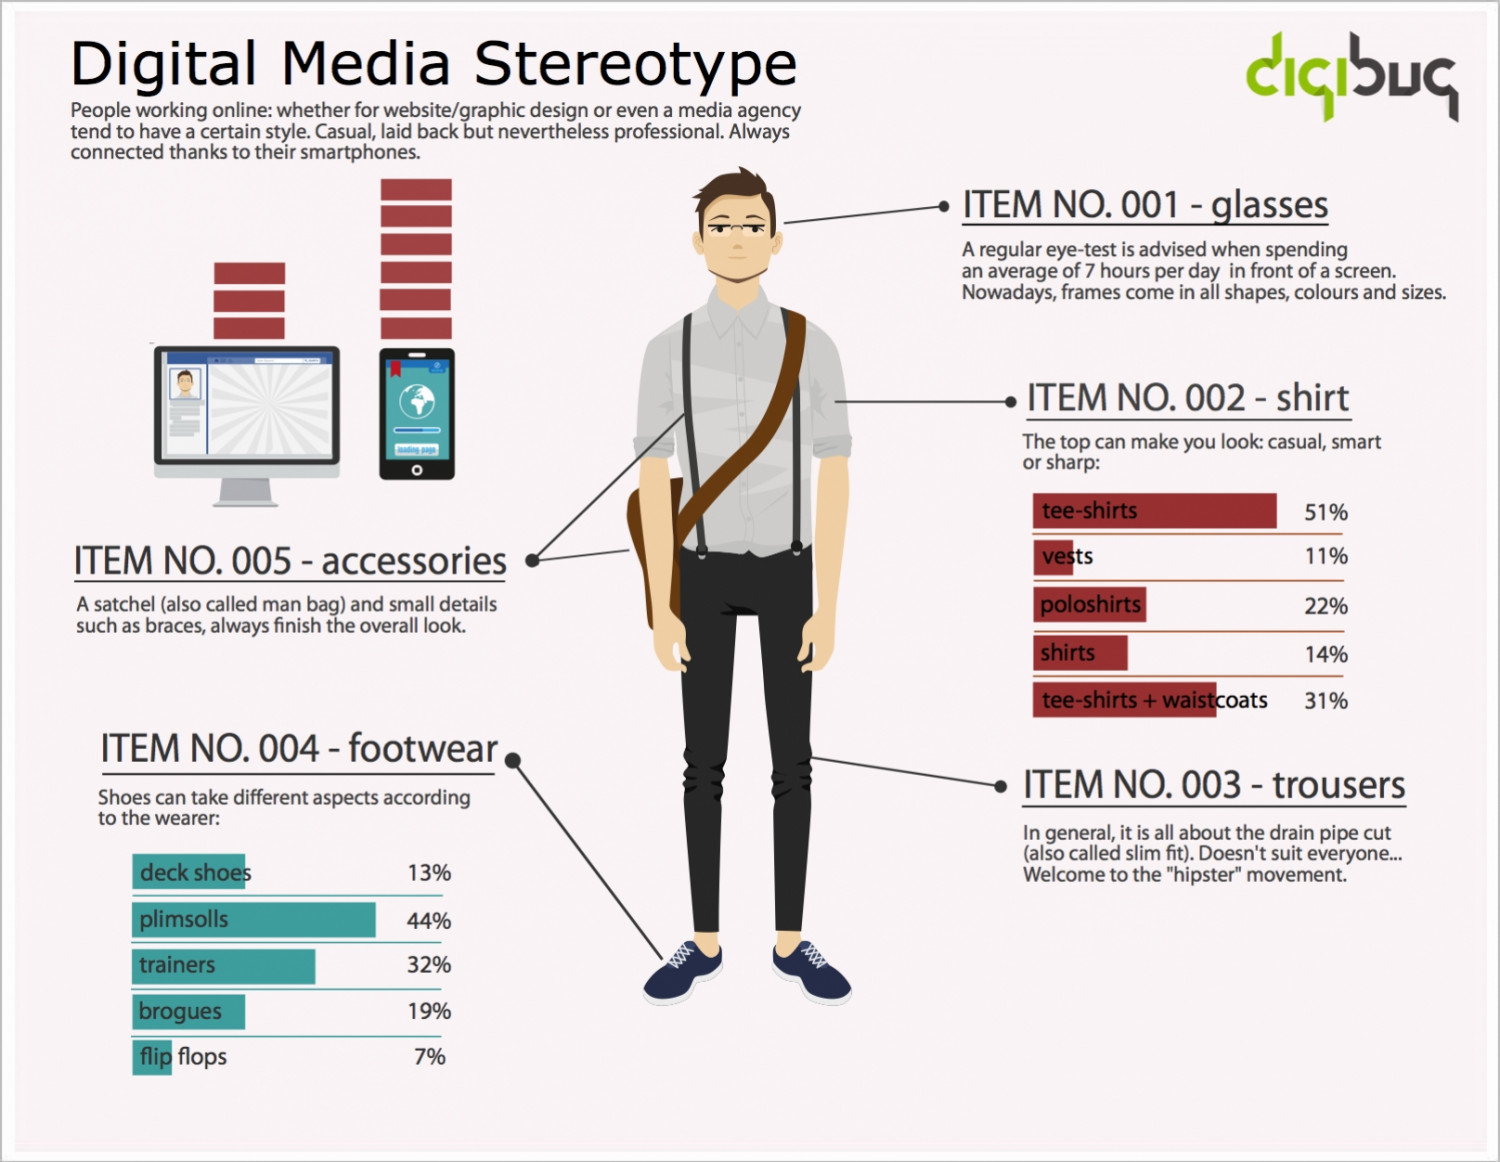 Digital Media Stereotype Infographic